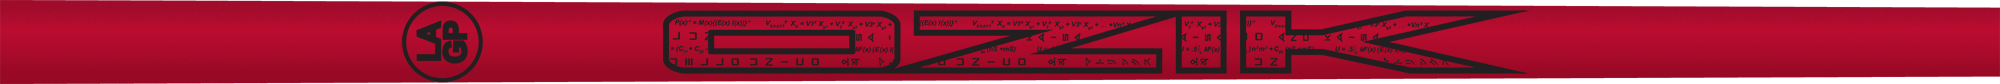 Ozik Red Tie: Red Black Matte - Wood 50 S